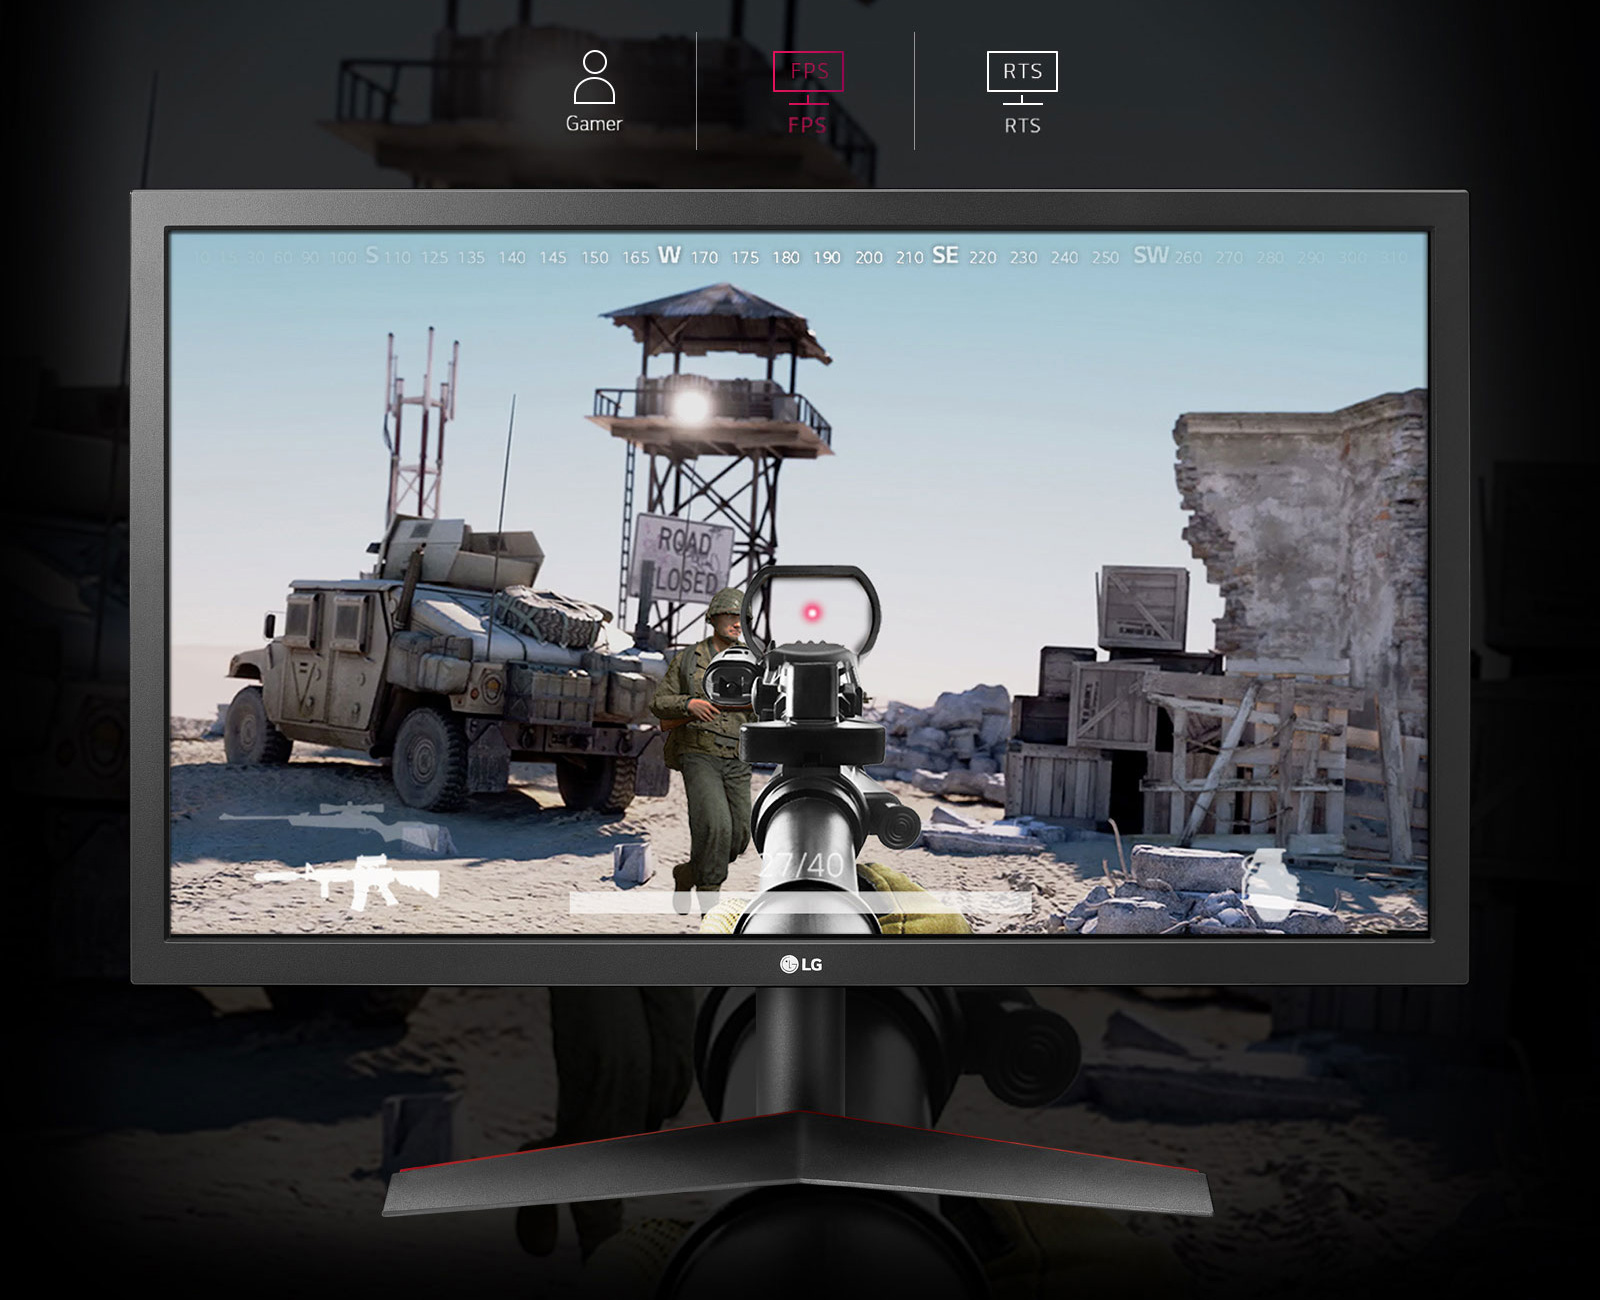 a shooting game screenshot of monitor